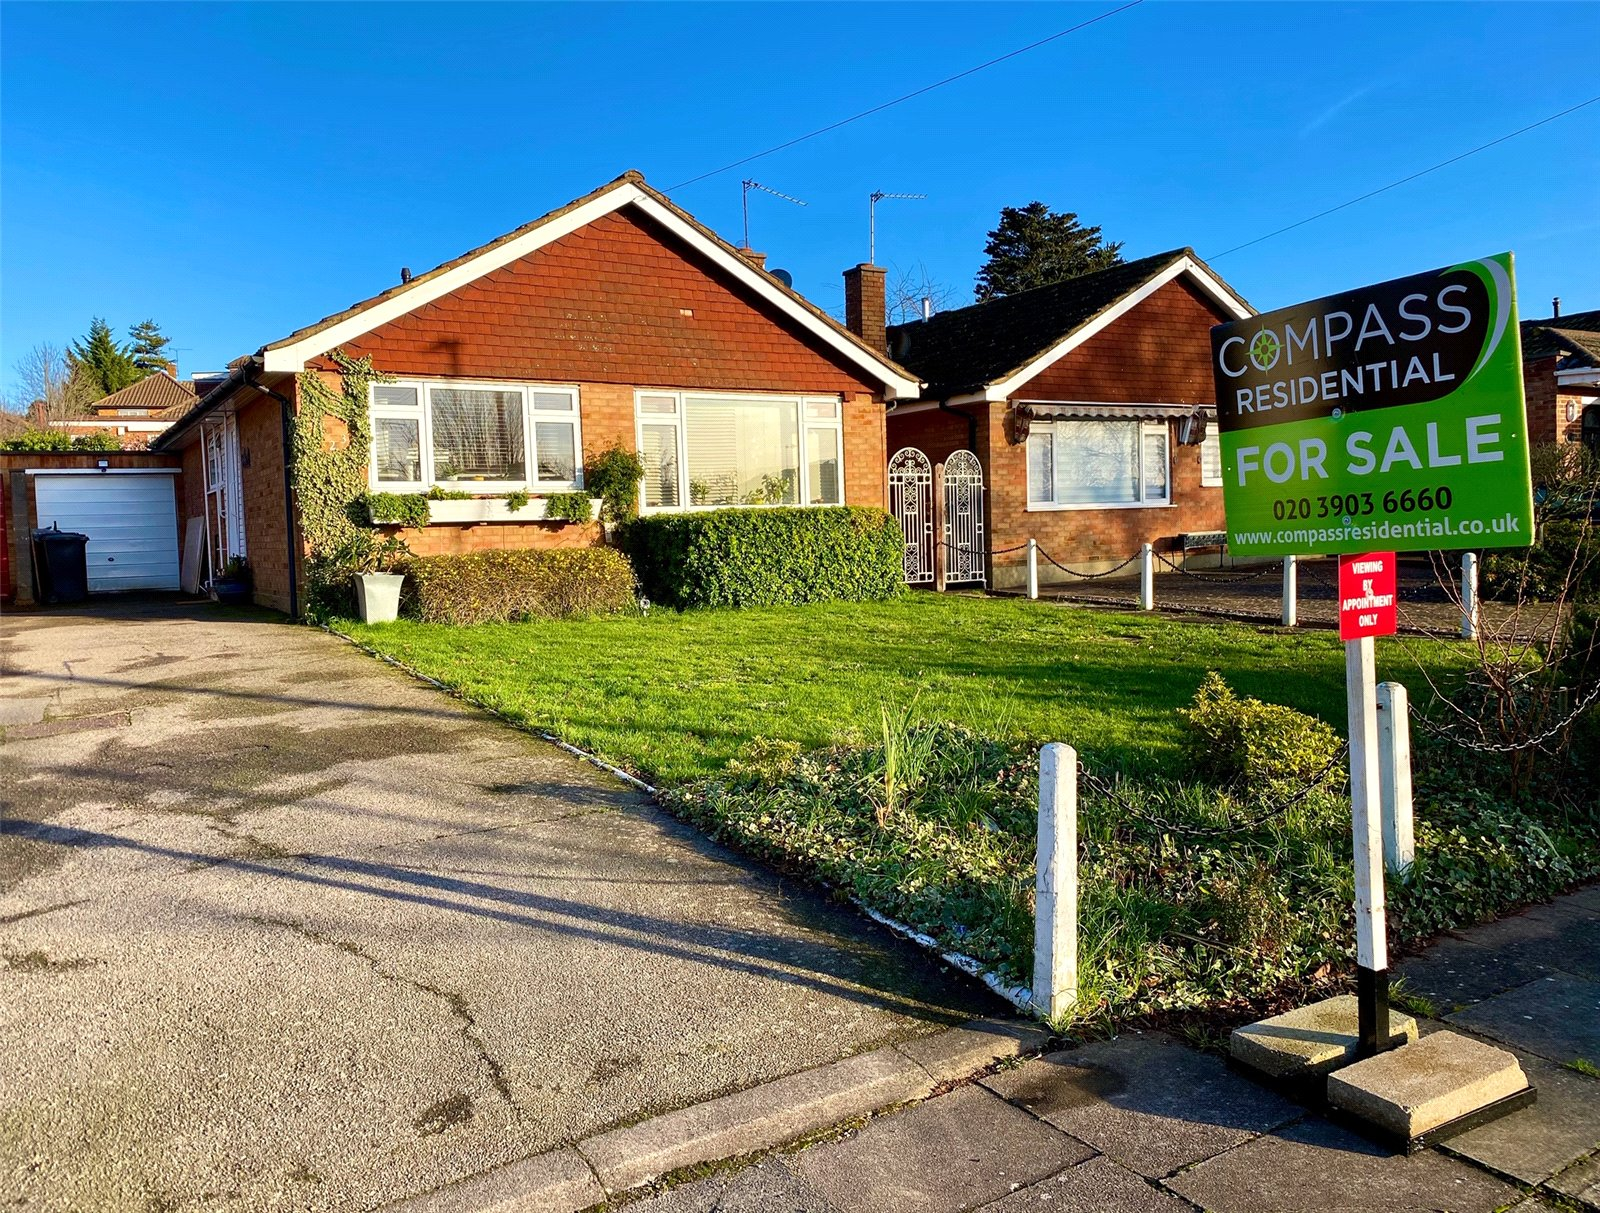 2 bed bungalow for sale in Barnet, EN4 9QT, EN4